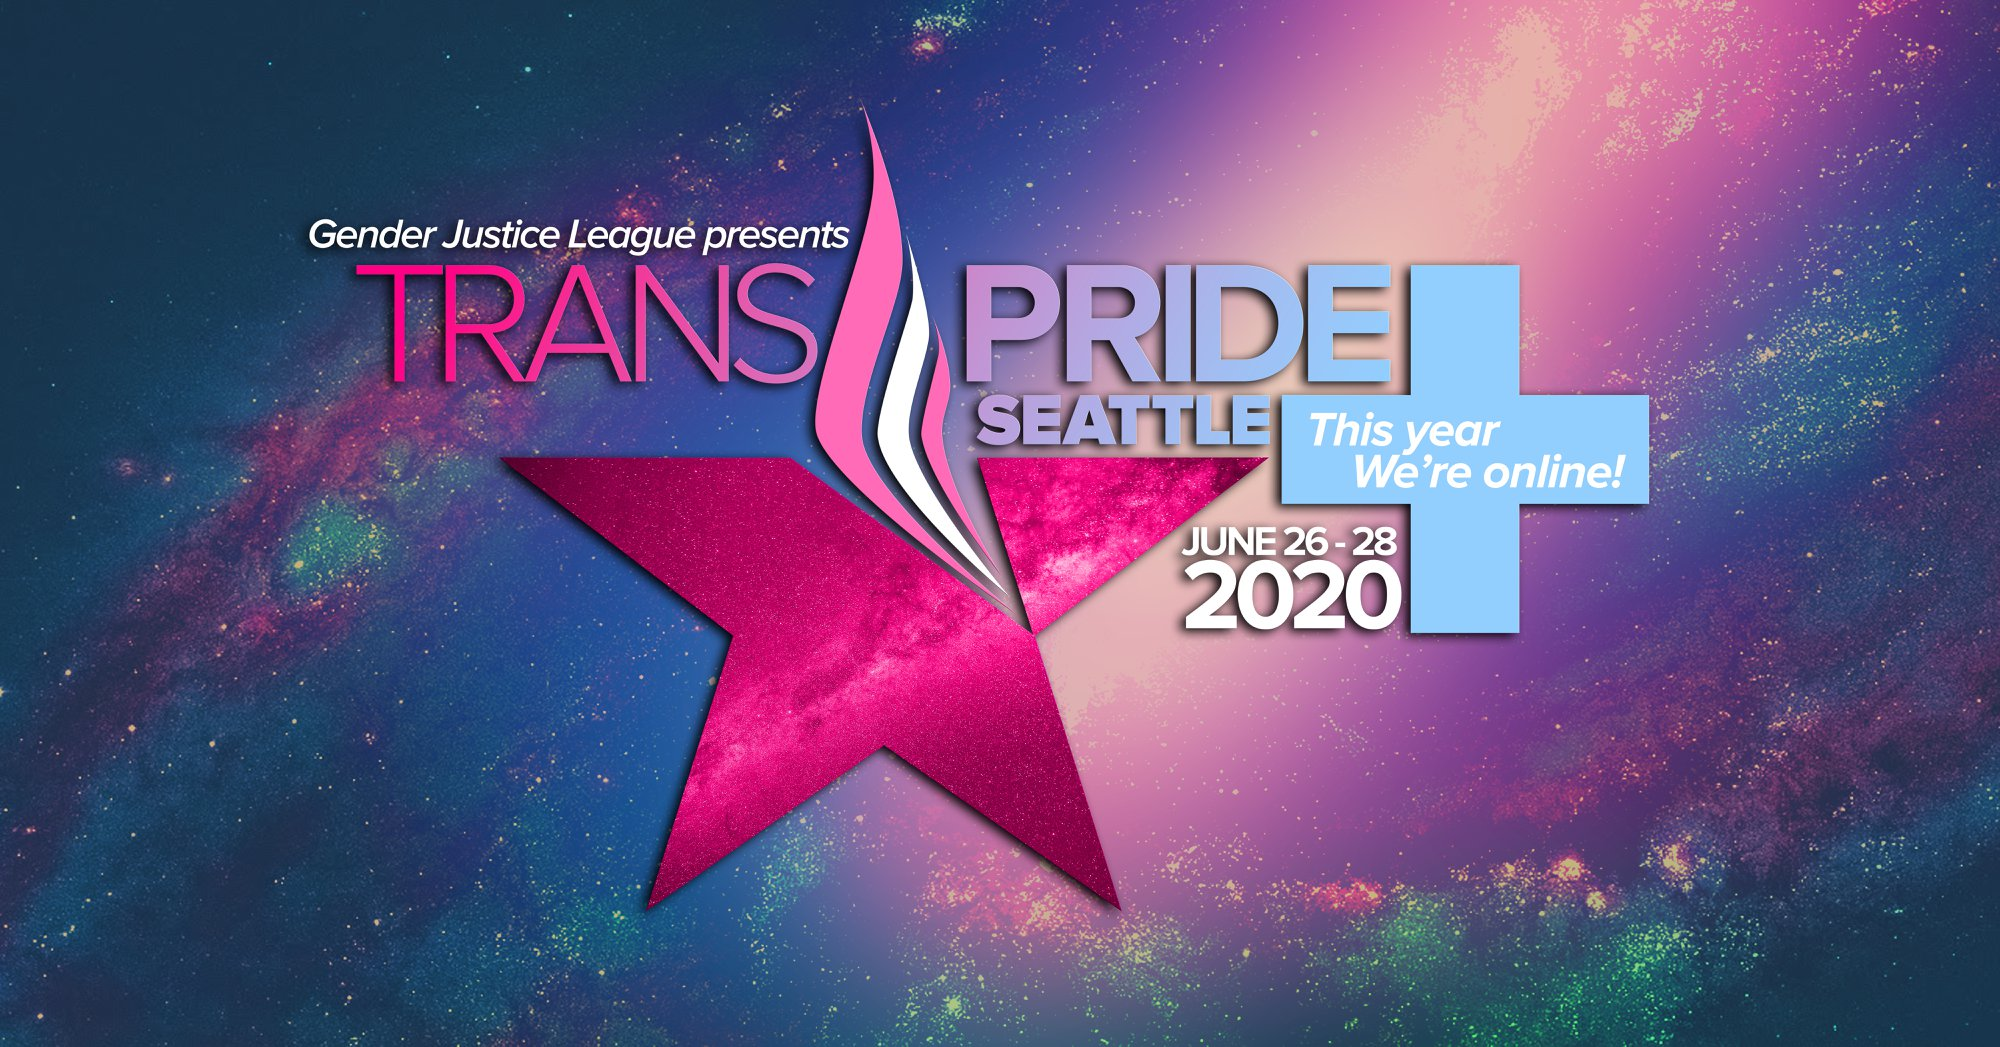 Trans Pride Seattle+: This year, we're online!